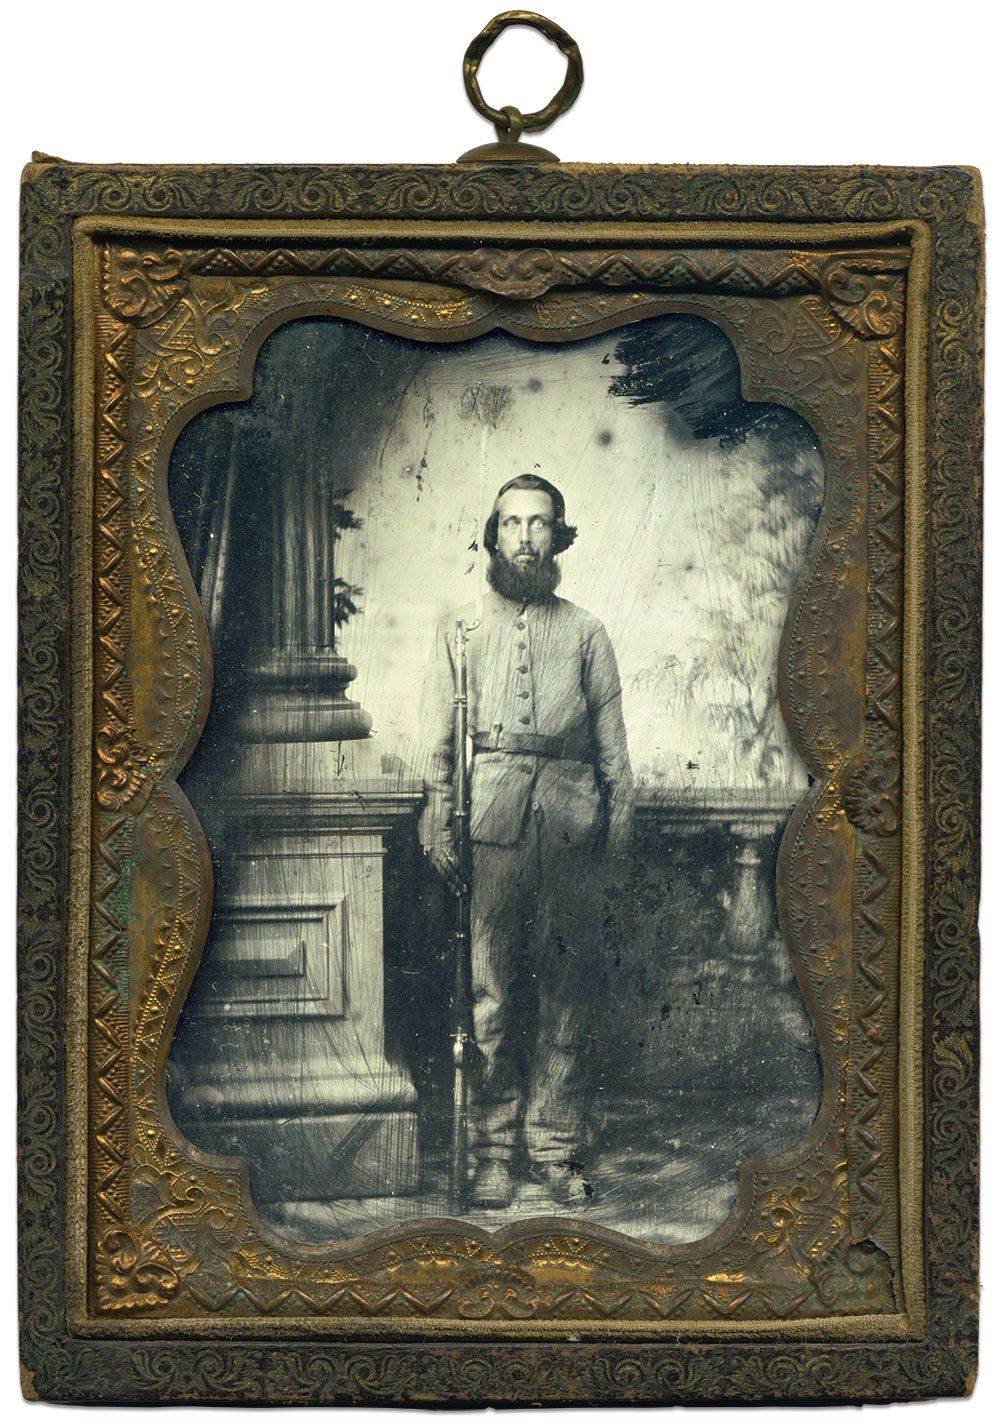 Quarter-plate tintype by Charles J. Quinby of Charleston, S.C. Terry Burnett Collection.